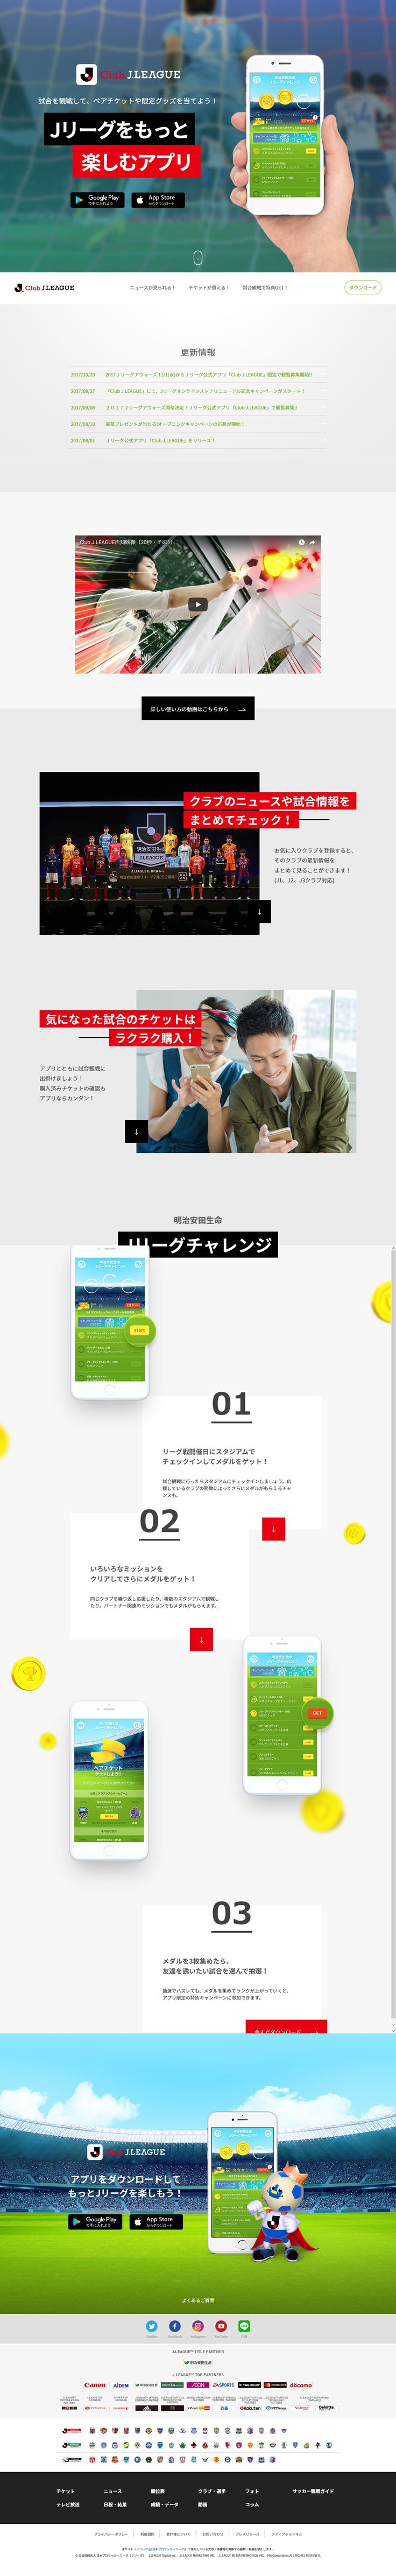 Jリーグ公式アプリ Club J.LEAGUE https://www.jleague.jp/app/